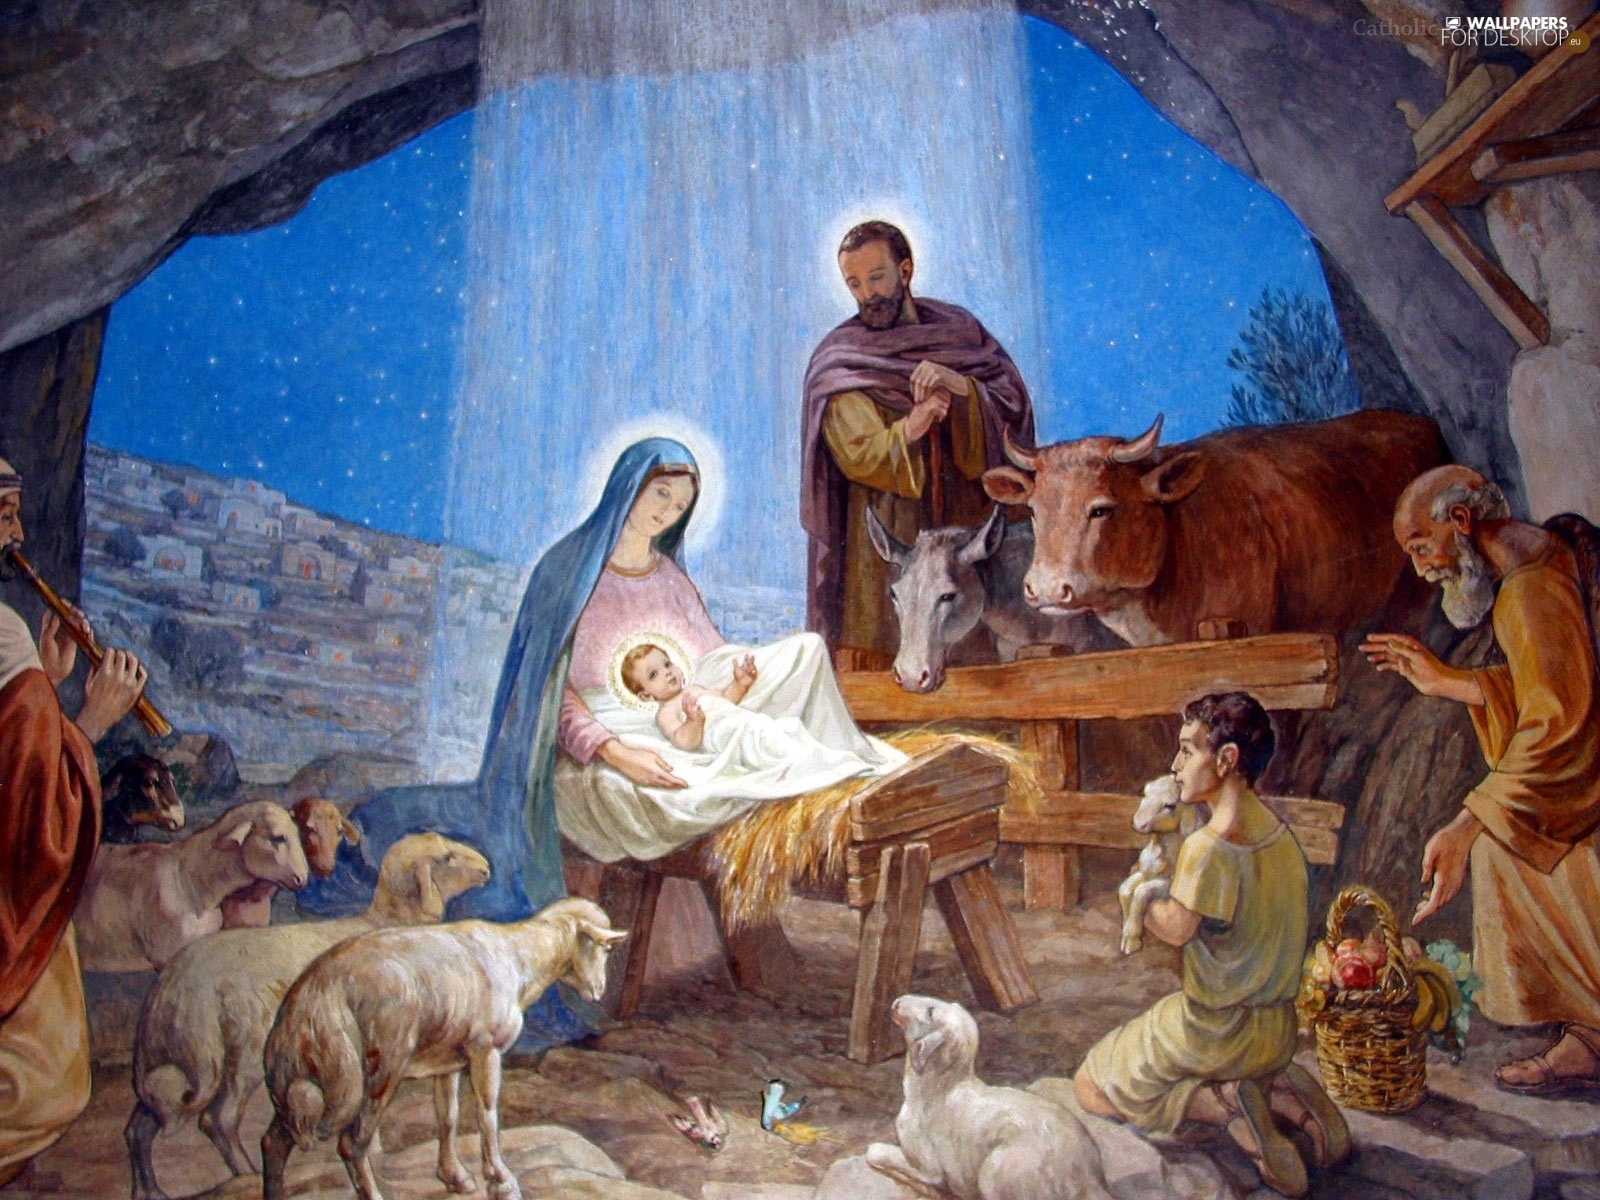 Stable Jesus Mary Joseph  For desktop wallpapers 1600x1200